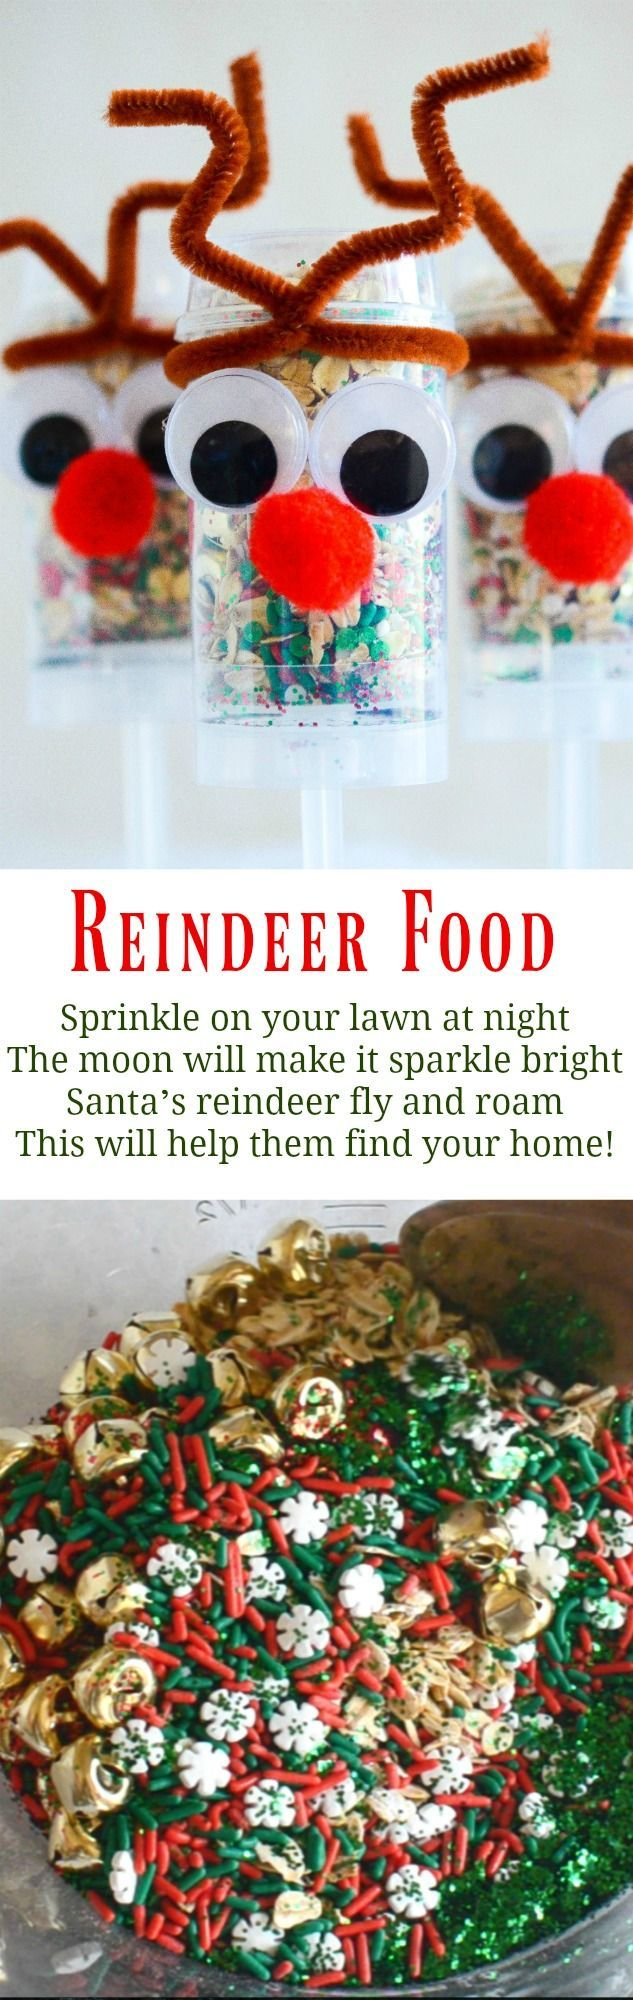 Reindeer food in push up pops spread this reindeer food around reindeer food in push up pops spread this reindeer food around your lawn on christmas forumfinder Gallery